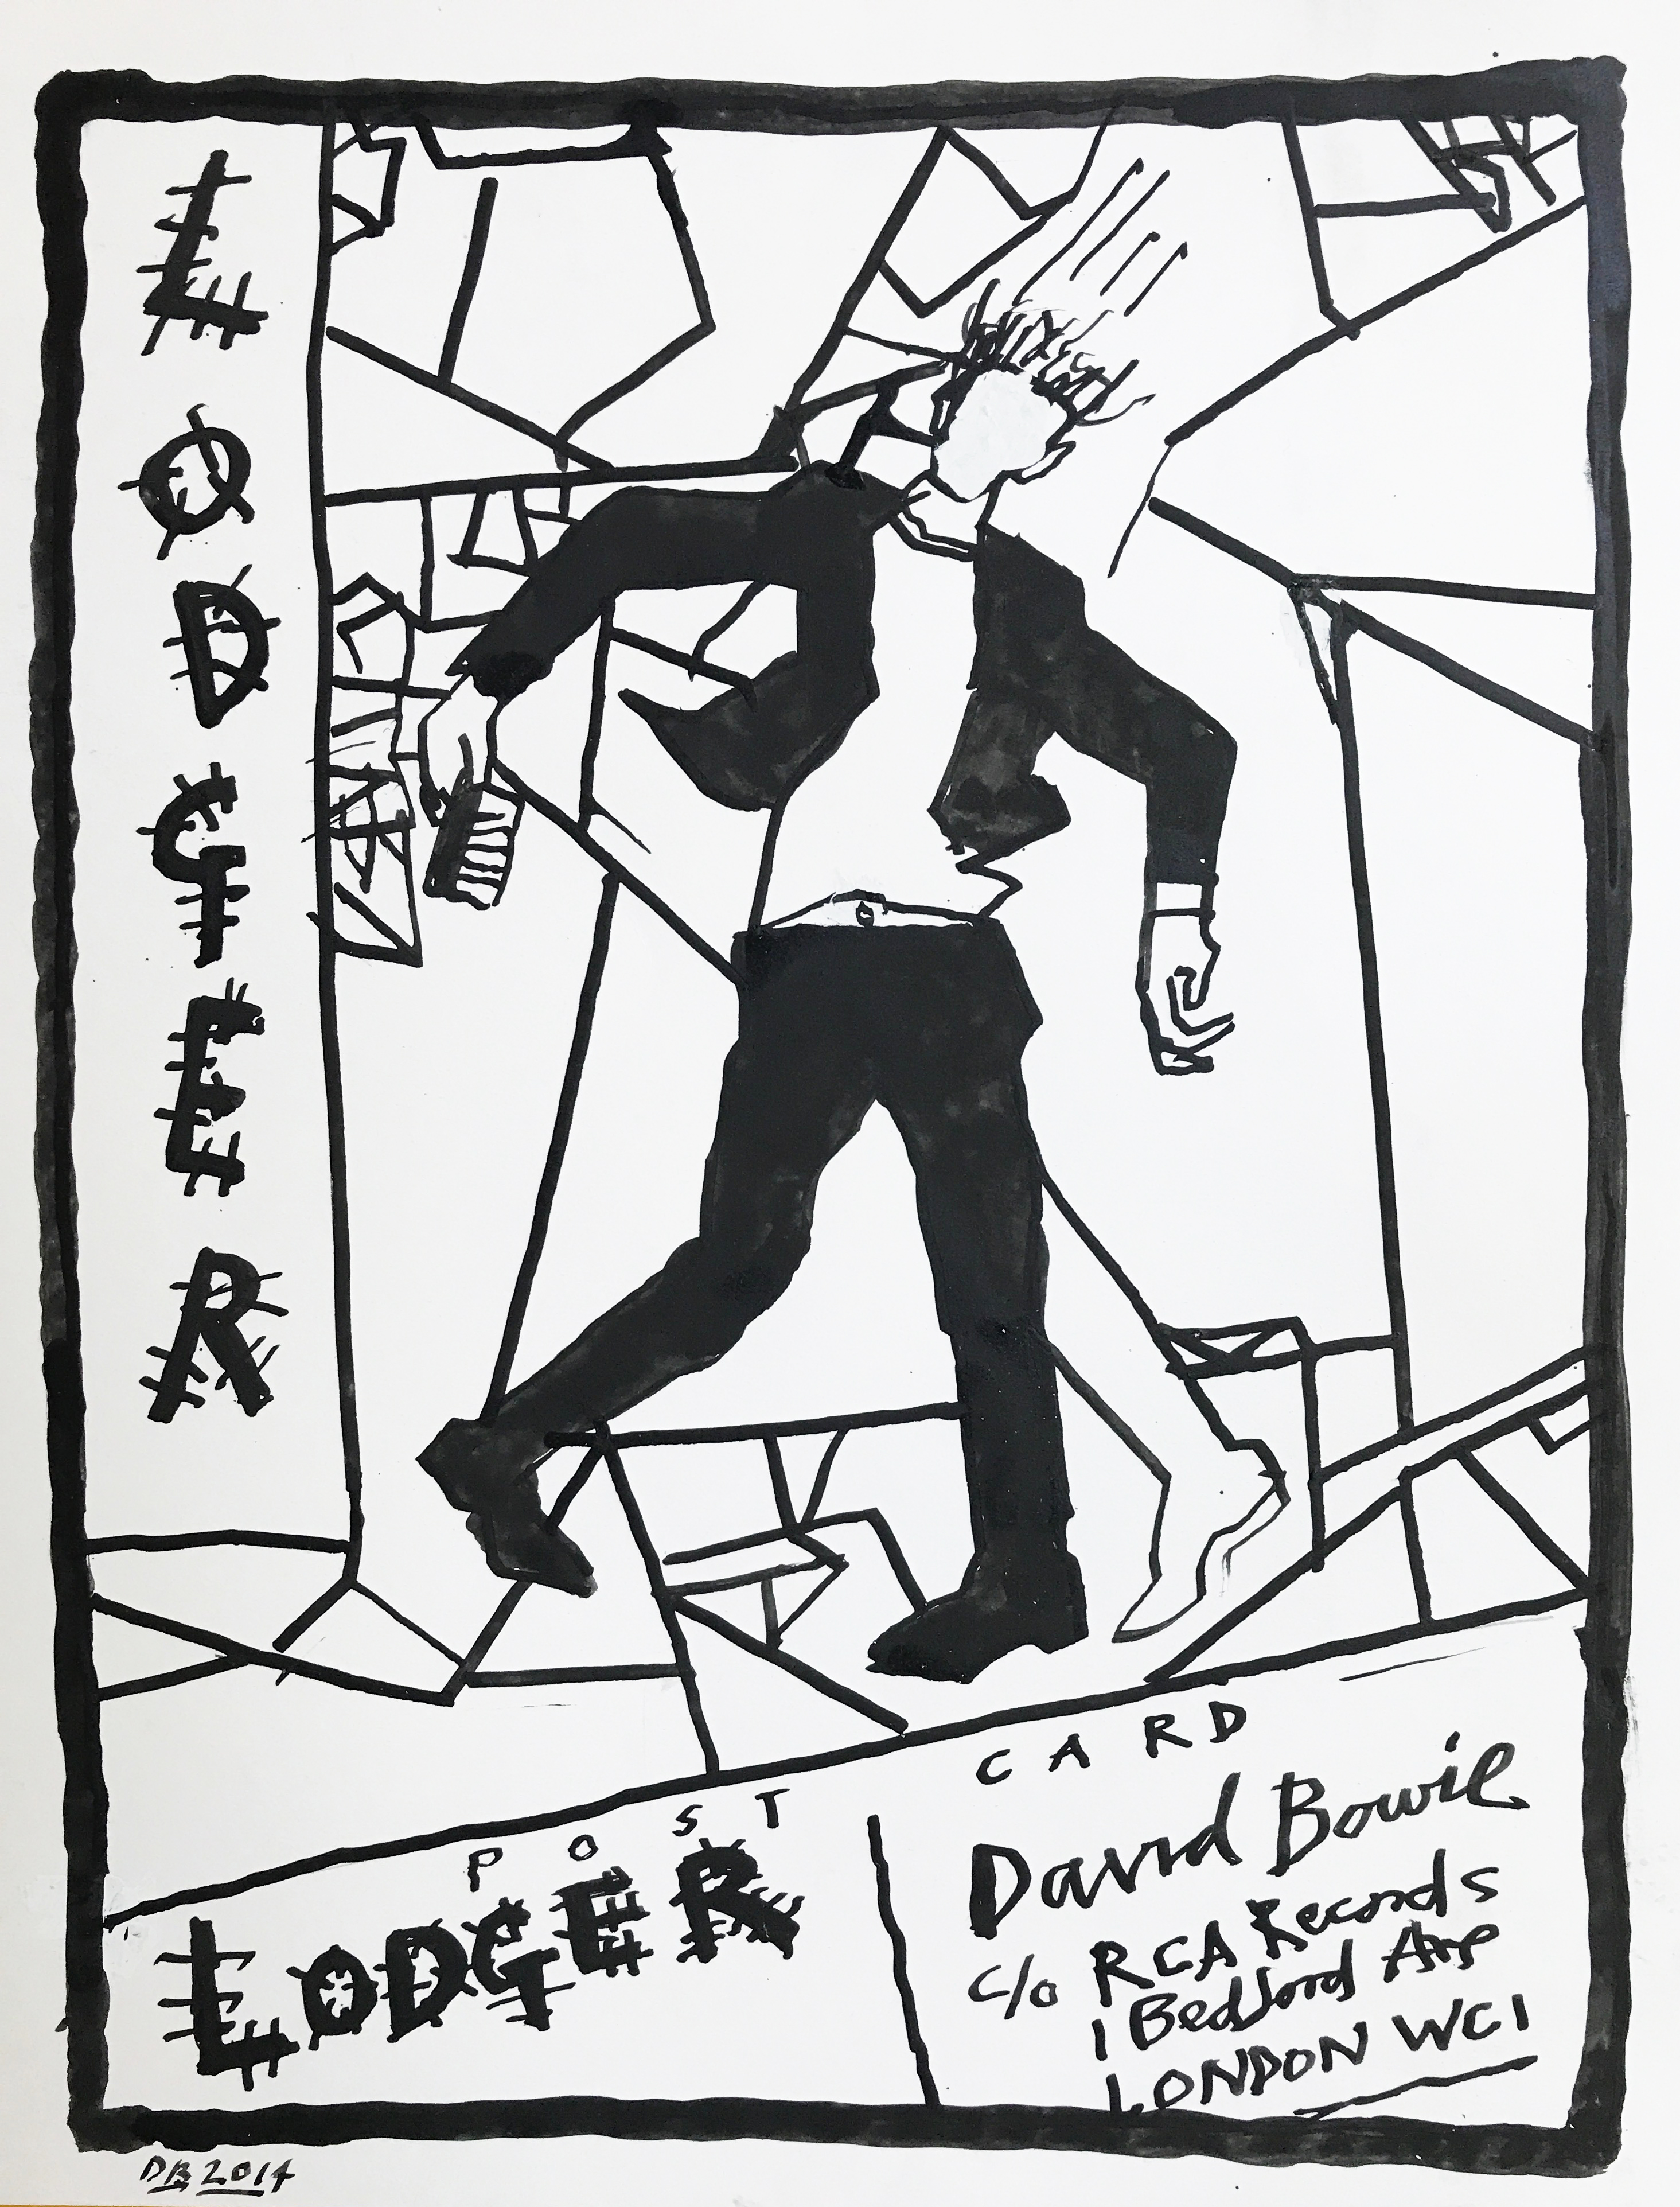 David Bowie Re-Visited